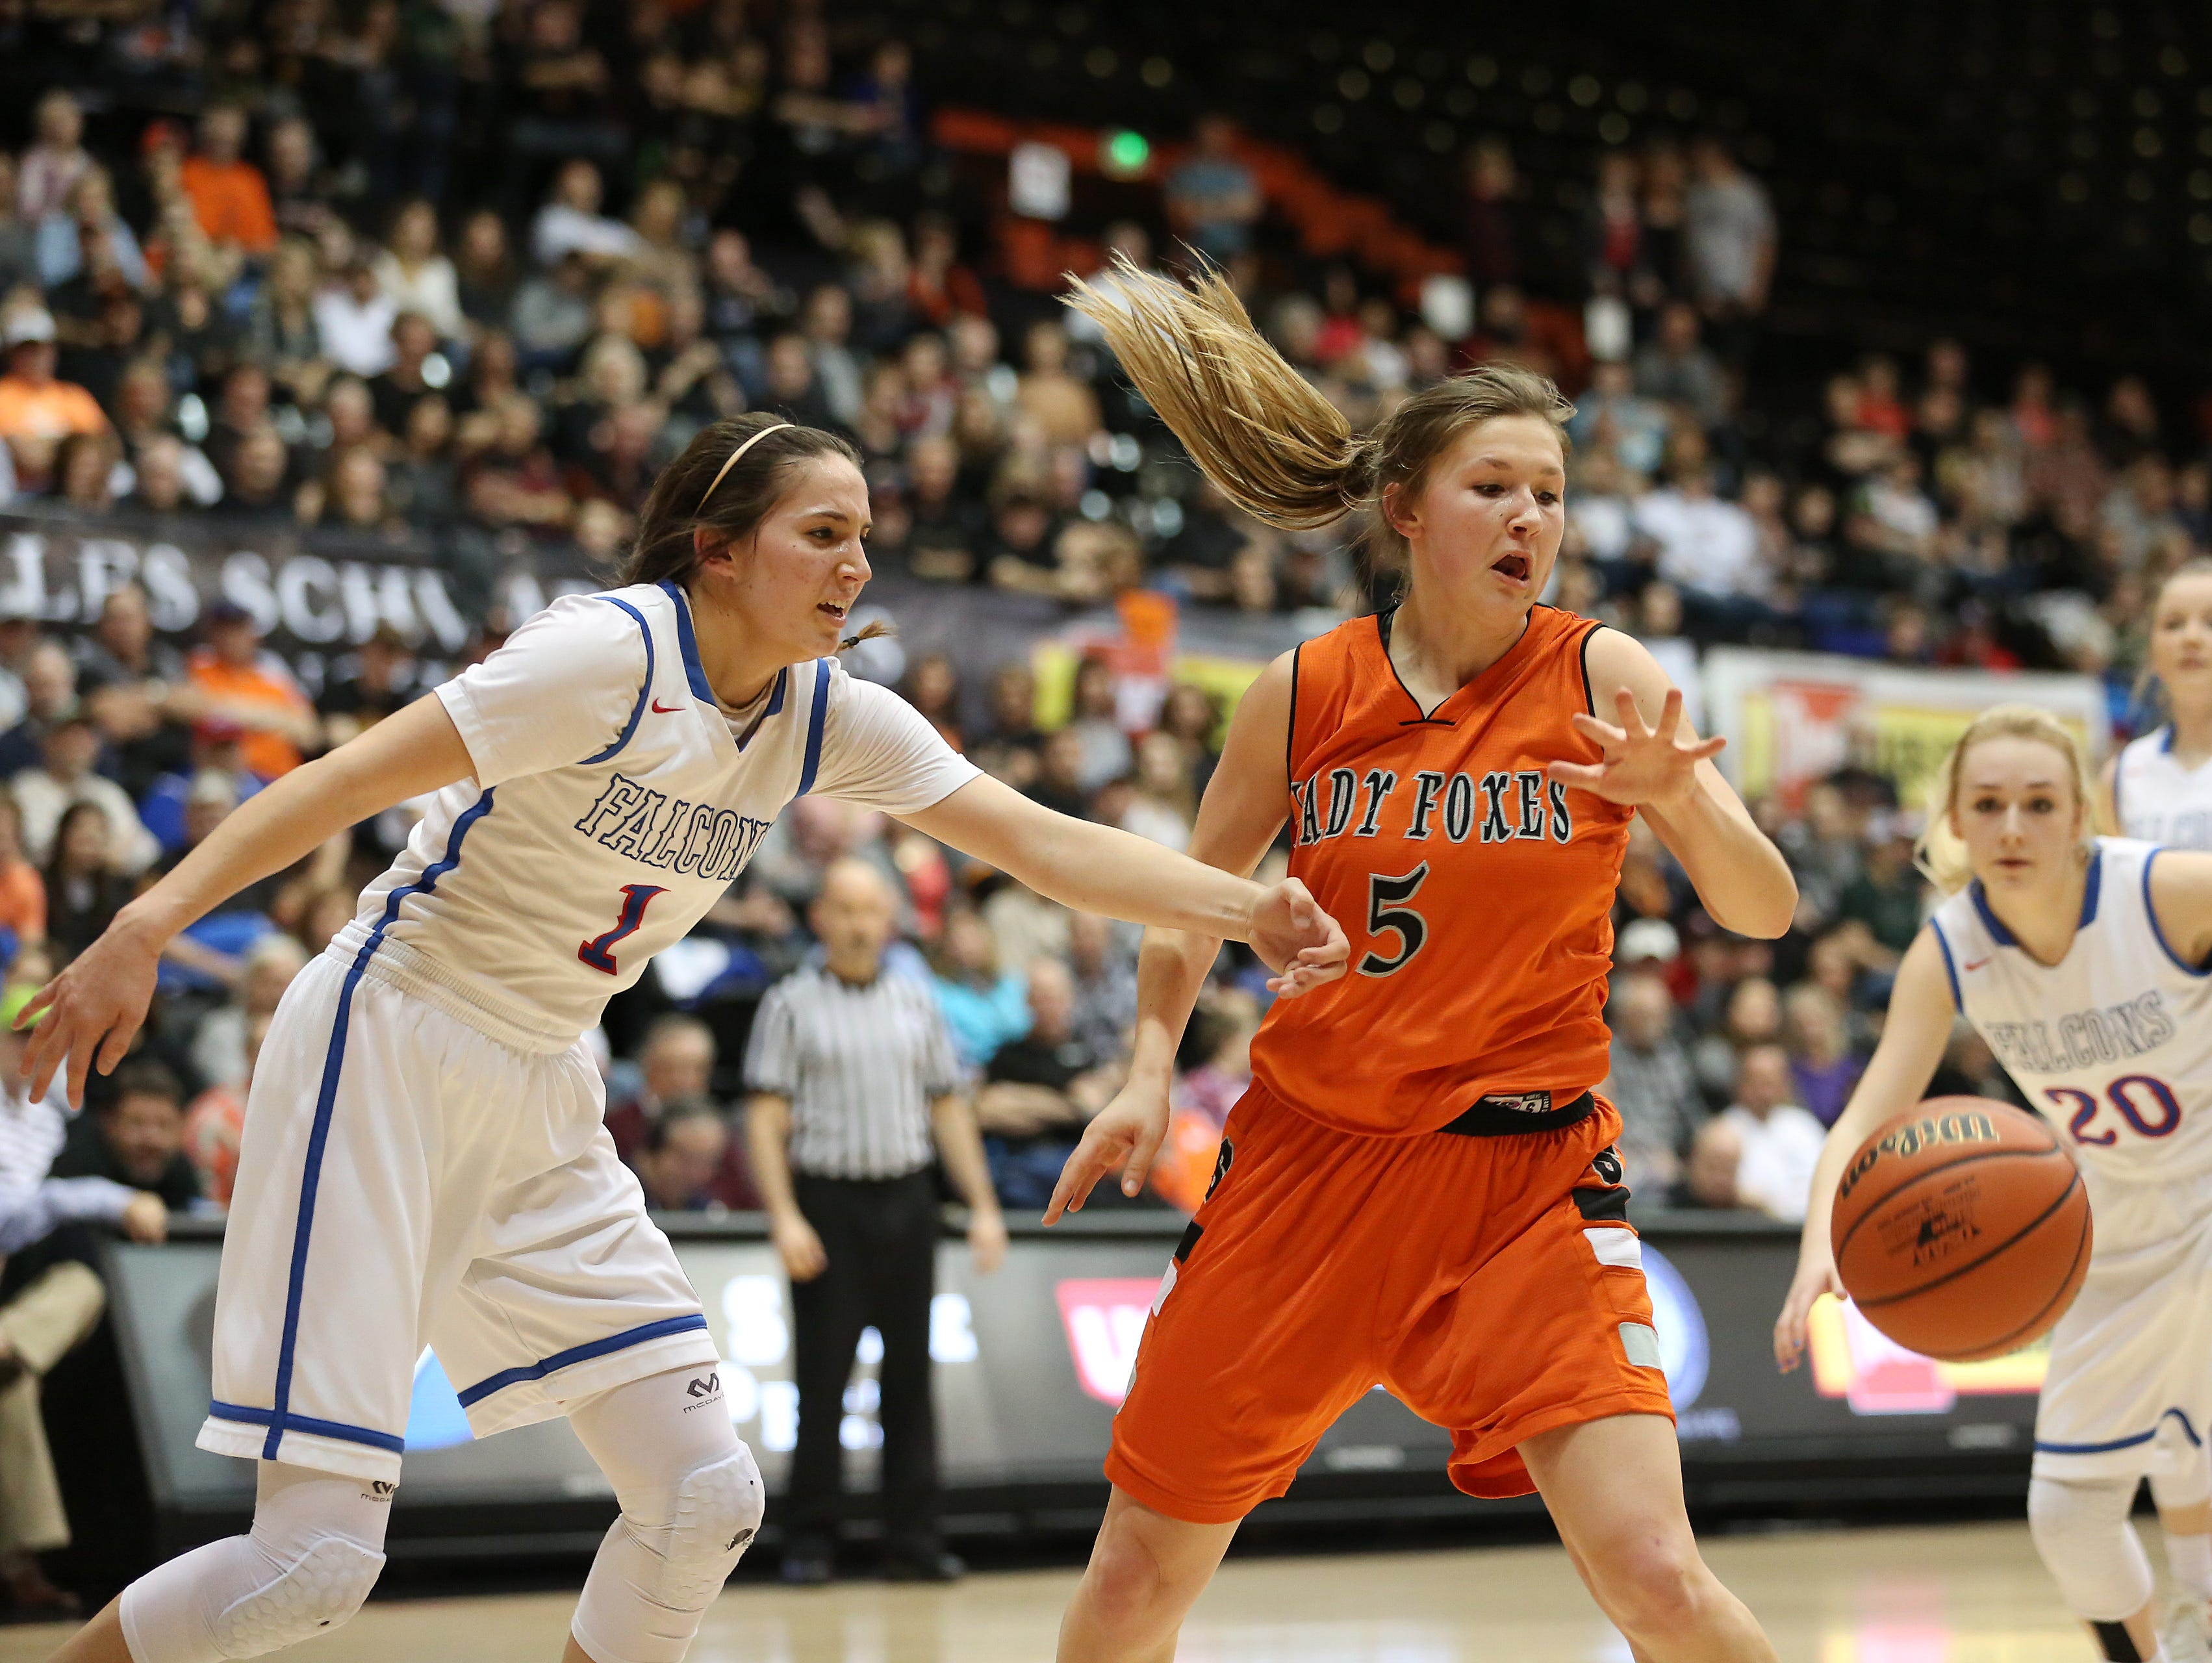 Silverton's Kayce McLaughlin and La Salle's Aleah Goodman battle for the ball in the OSAA Class 5A state championship on Friday, March 10, 2017, at Gill Coliseum in Corvallis. Silverton falls to La Salle 42-28.